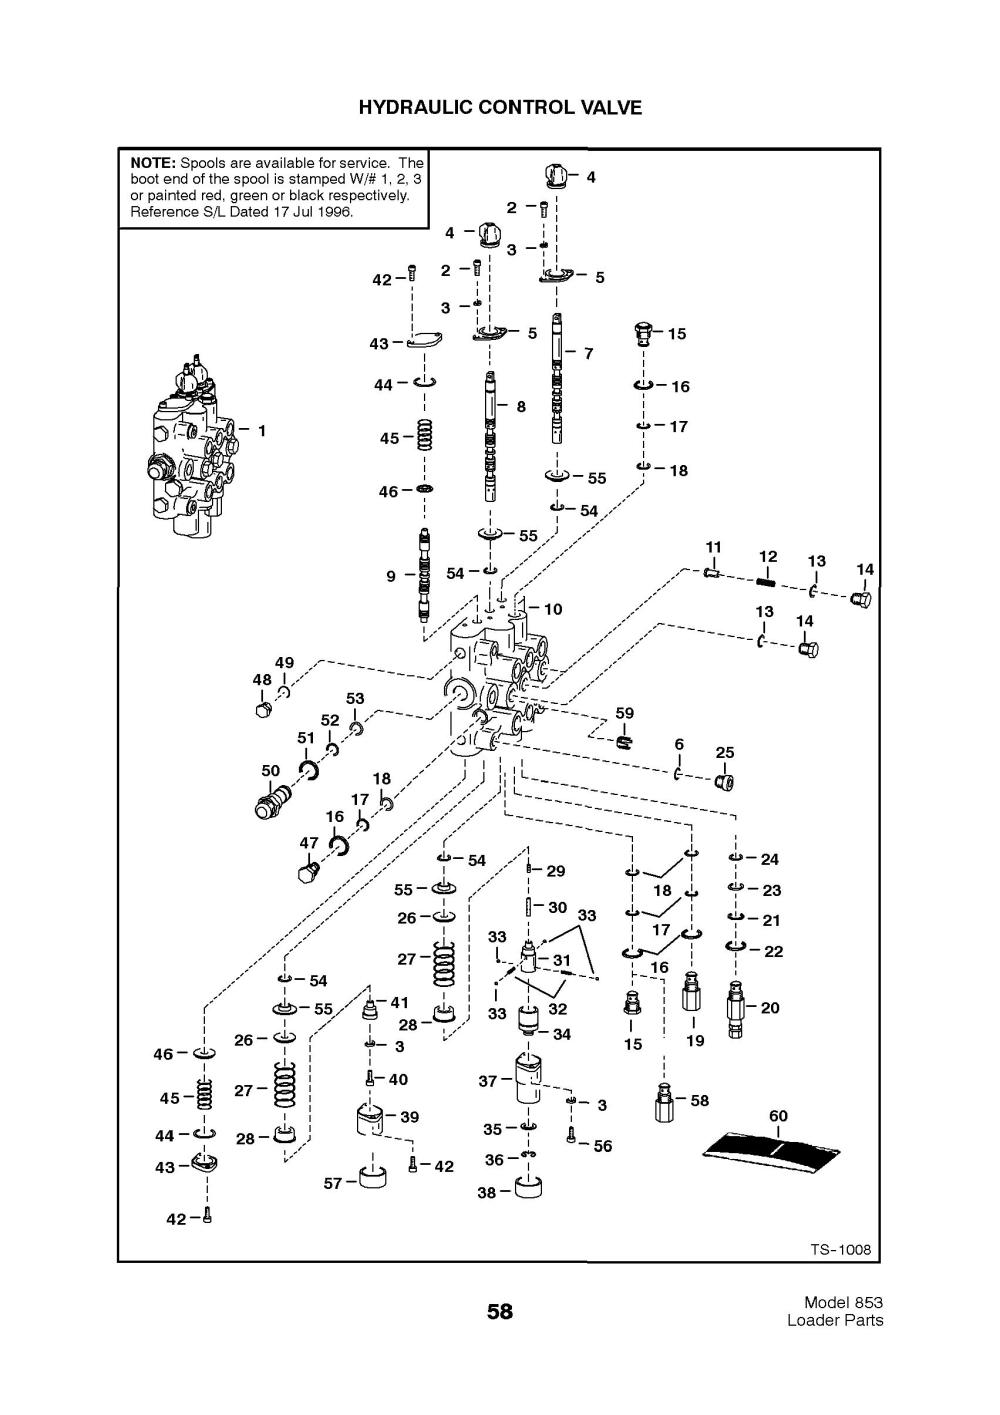 medium resolution of  medium resolution of 763 bobcat hydraulic schematic wiring diagram third level bobcat 753 hydraulic diagram bobcat